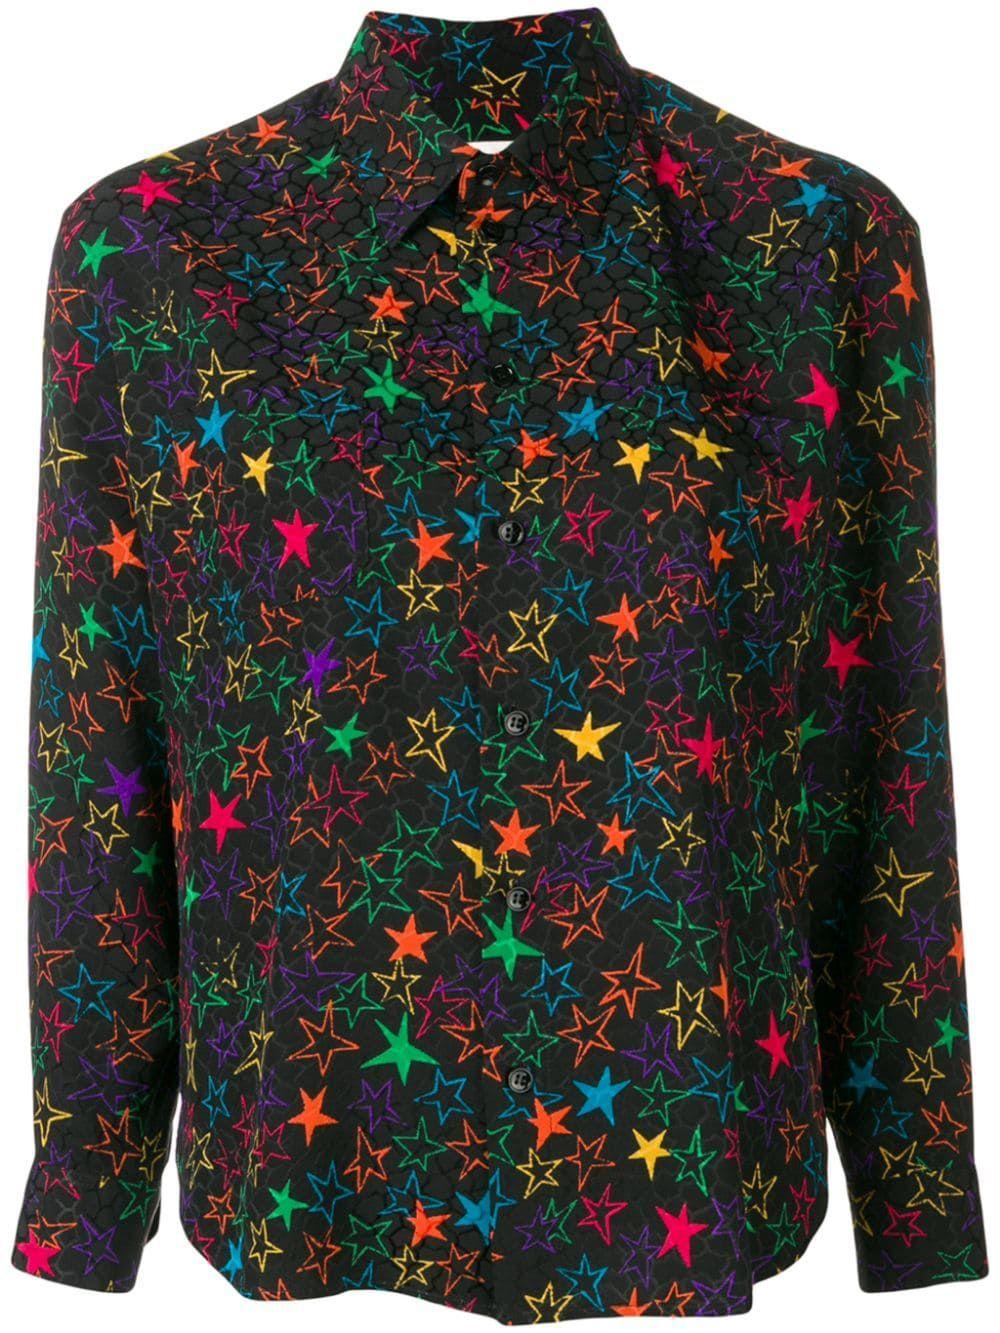 Long Sleeve Neon Star Blouse